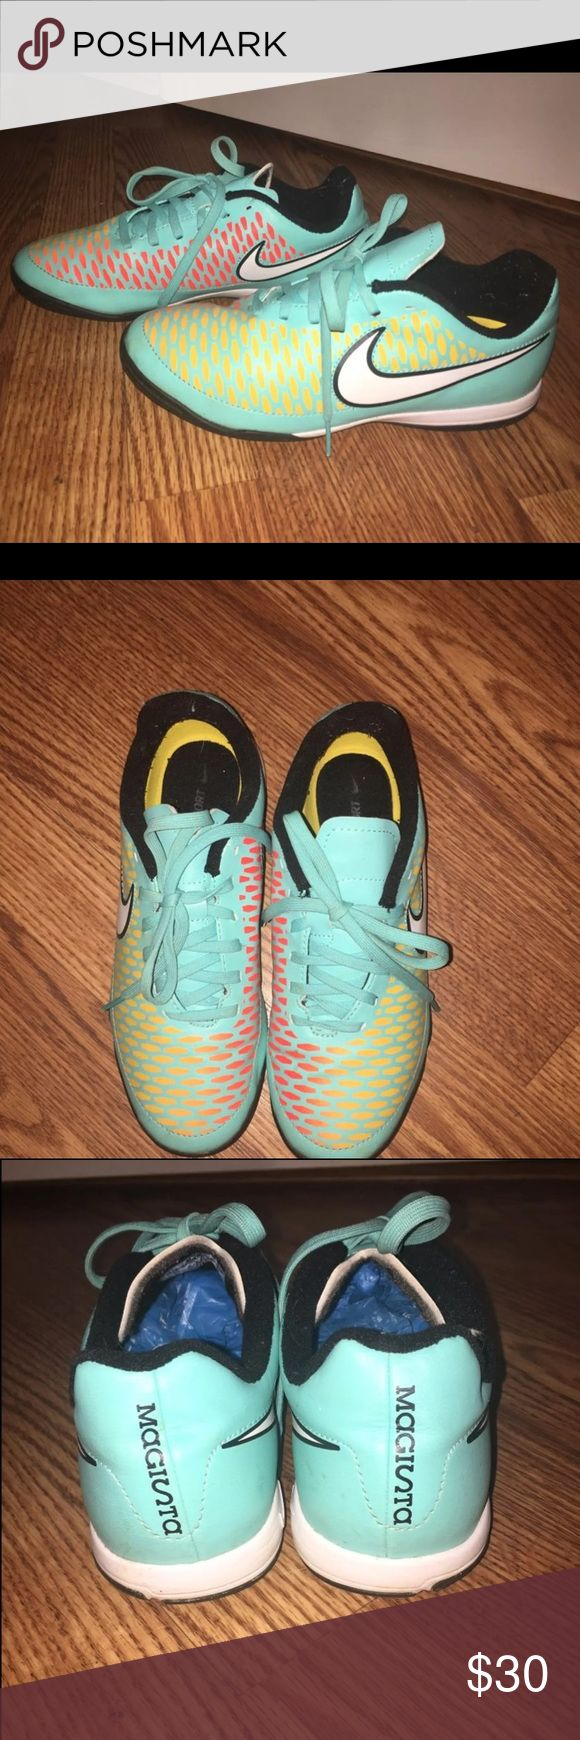 Indoor Soccer Cleats - Nike NWOT. Worn maybe once. Not a soccer player so I have no need for them. Nike Shoes Sneakers